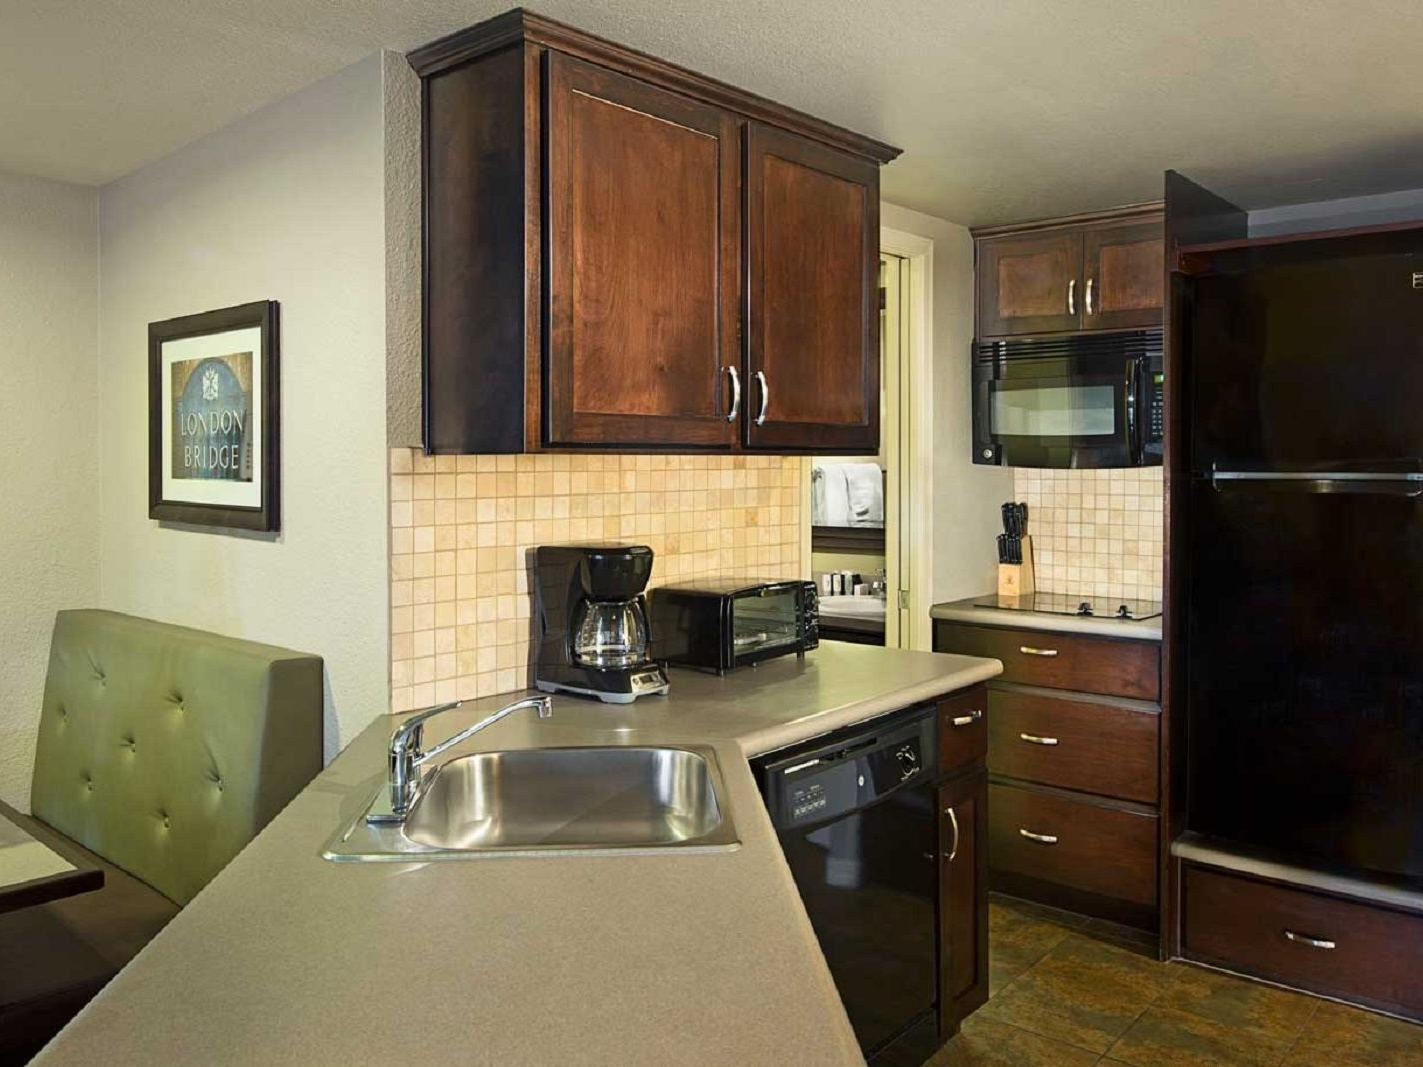 Kitchenette in resort suite.